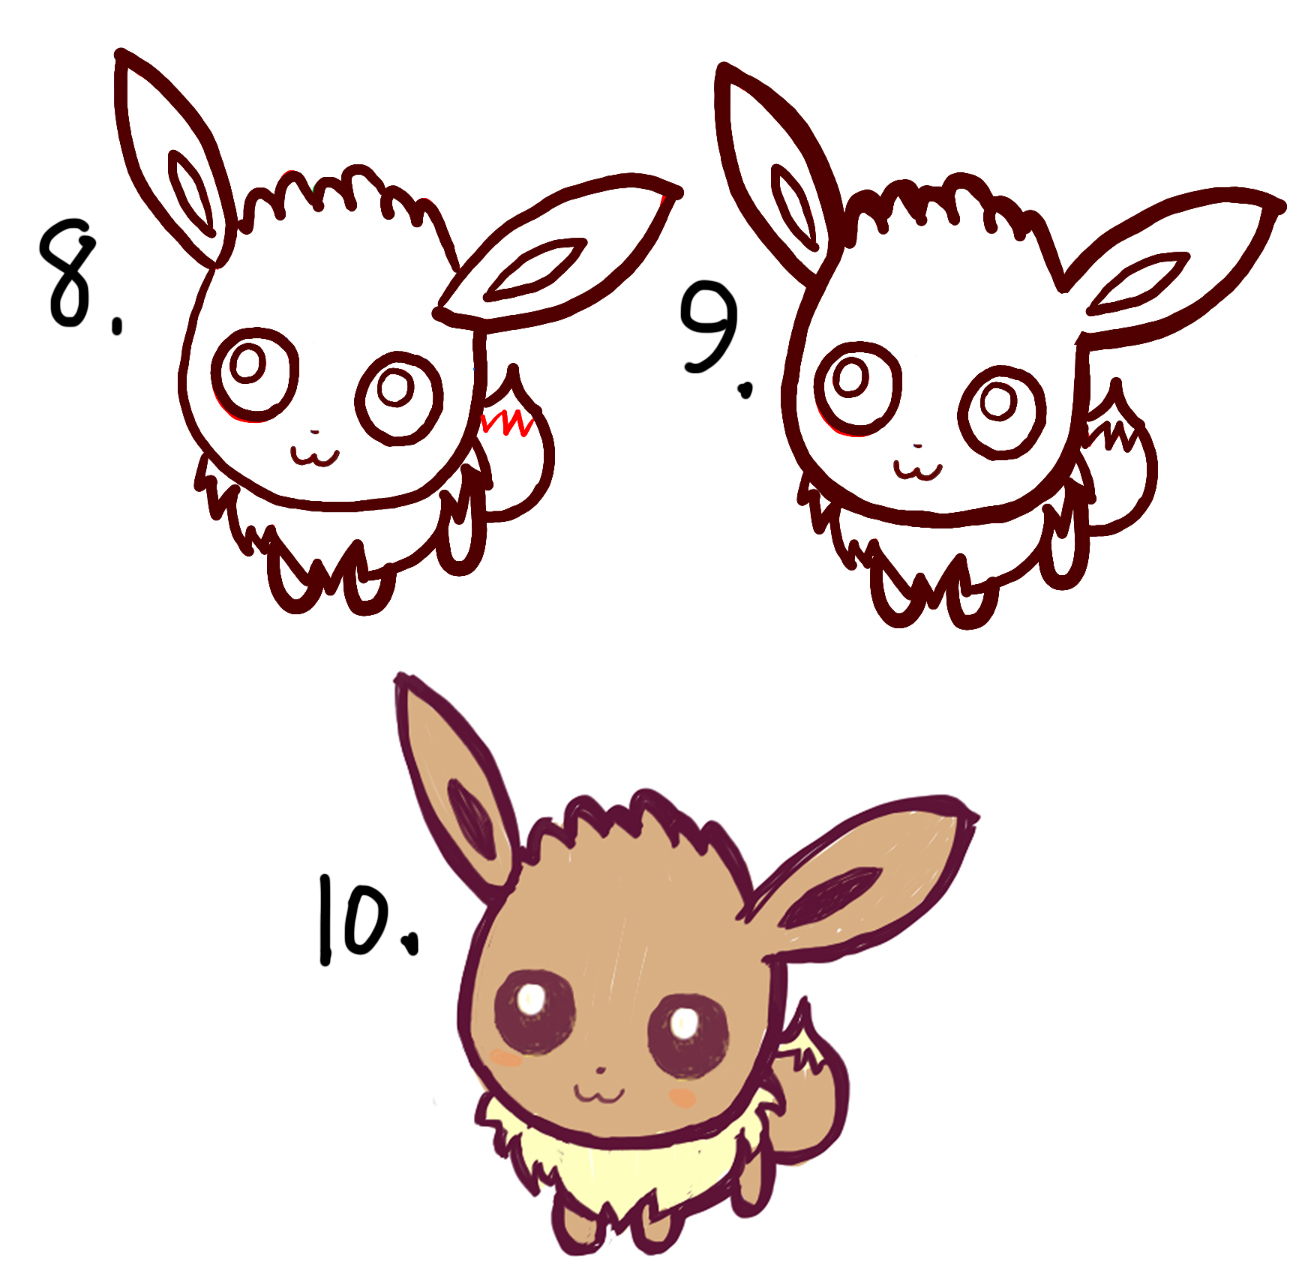 How to draw cute baby chibi eevee from pokemon easy step by step learn how to draw cute chibi baby eevee in easy steps biocorpaavc Choice Image